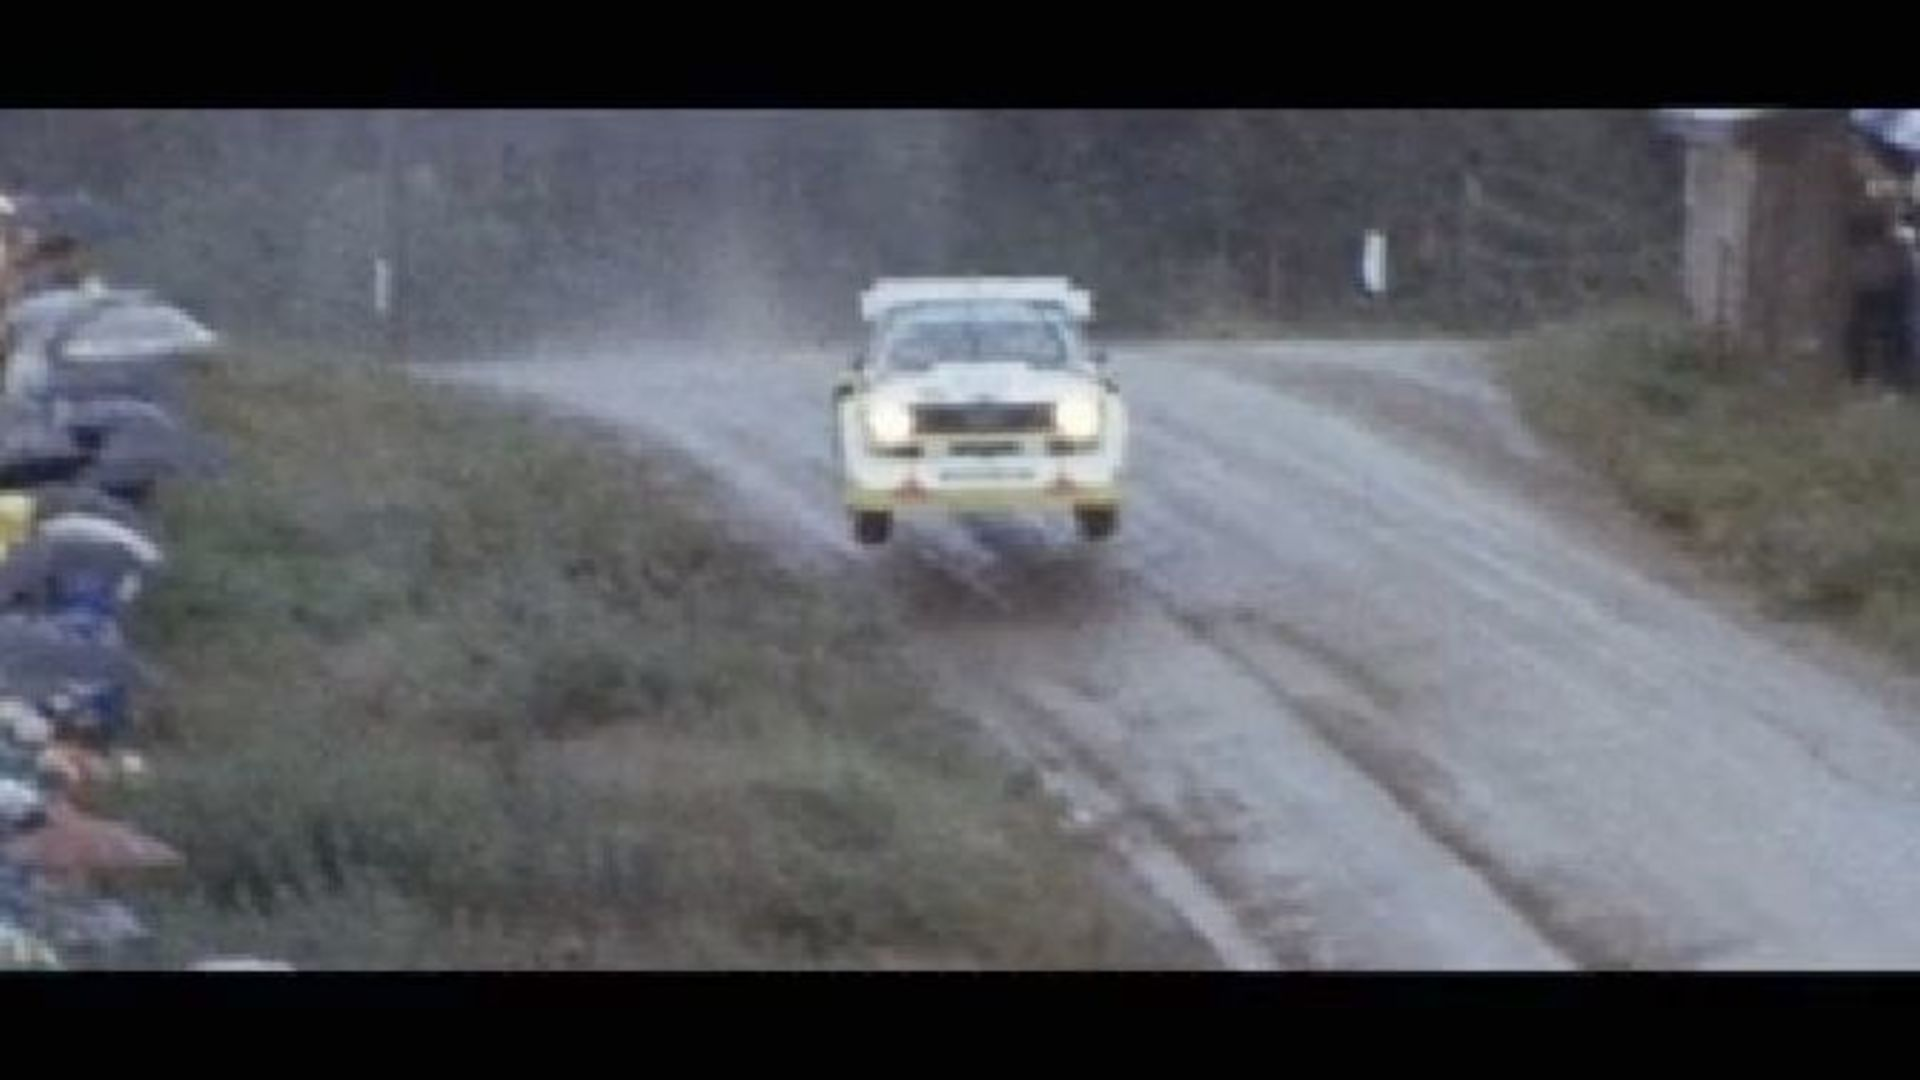 quattro with ultra technology - all-wheel drive for the future